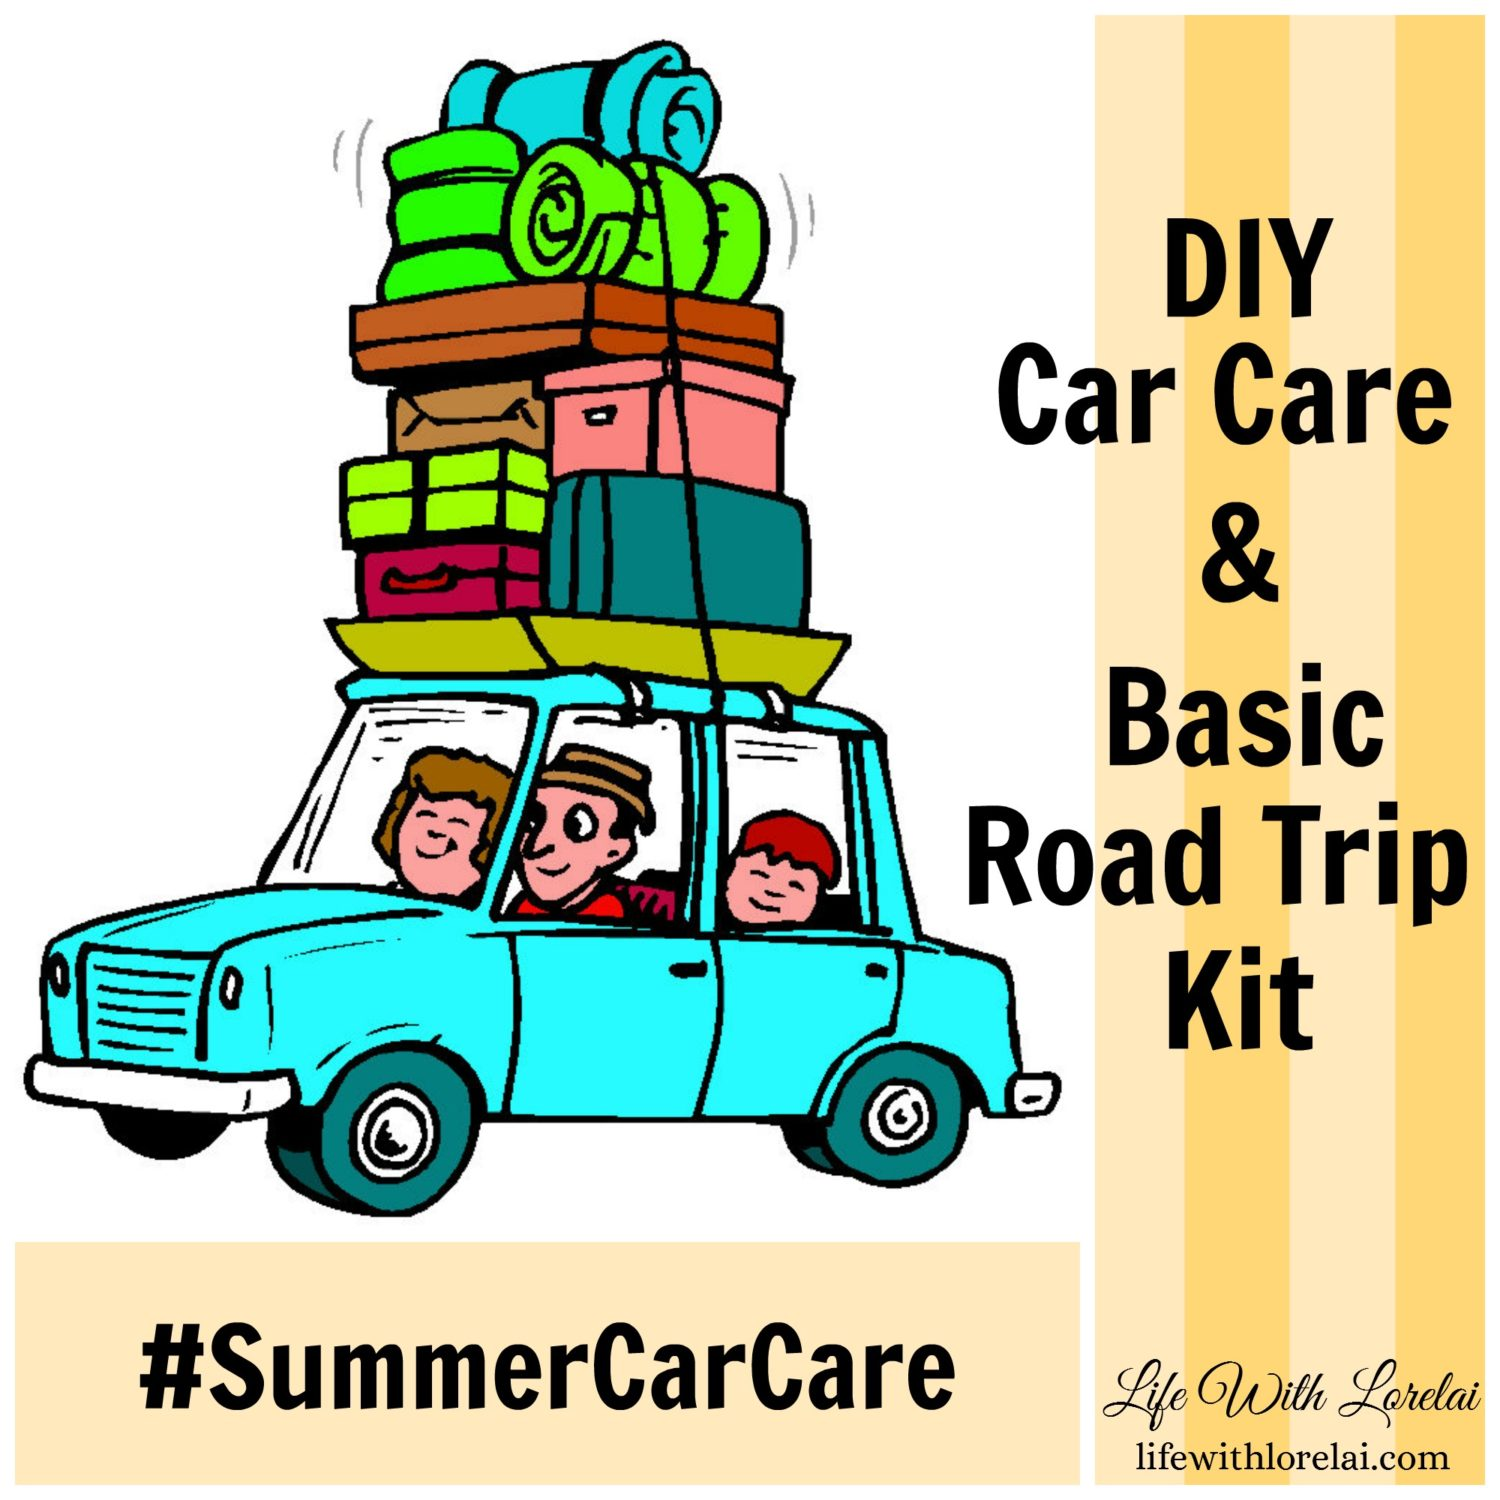 DIY-Car-Care-Basic-Raod-Trip-Kit-FRAM-Walmart-Life-With-Lorelai